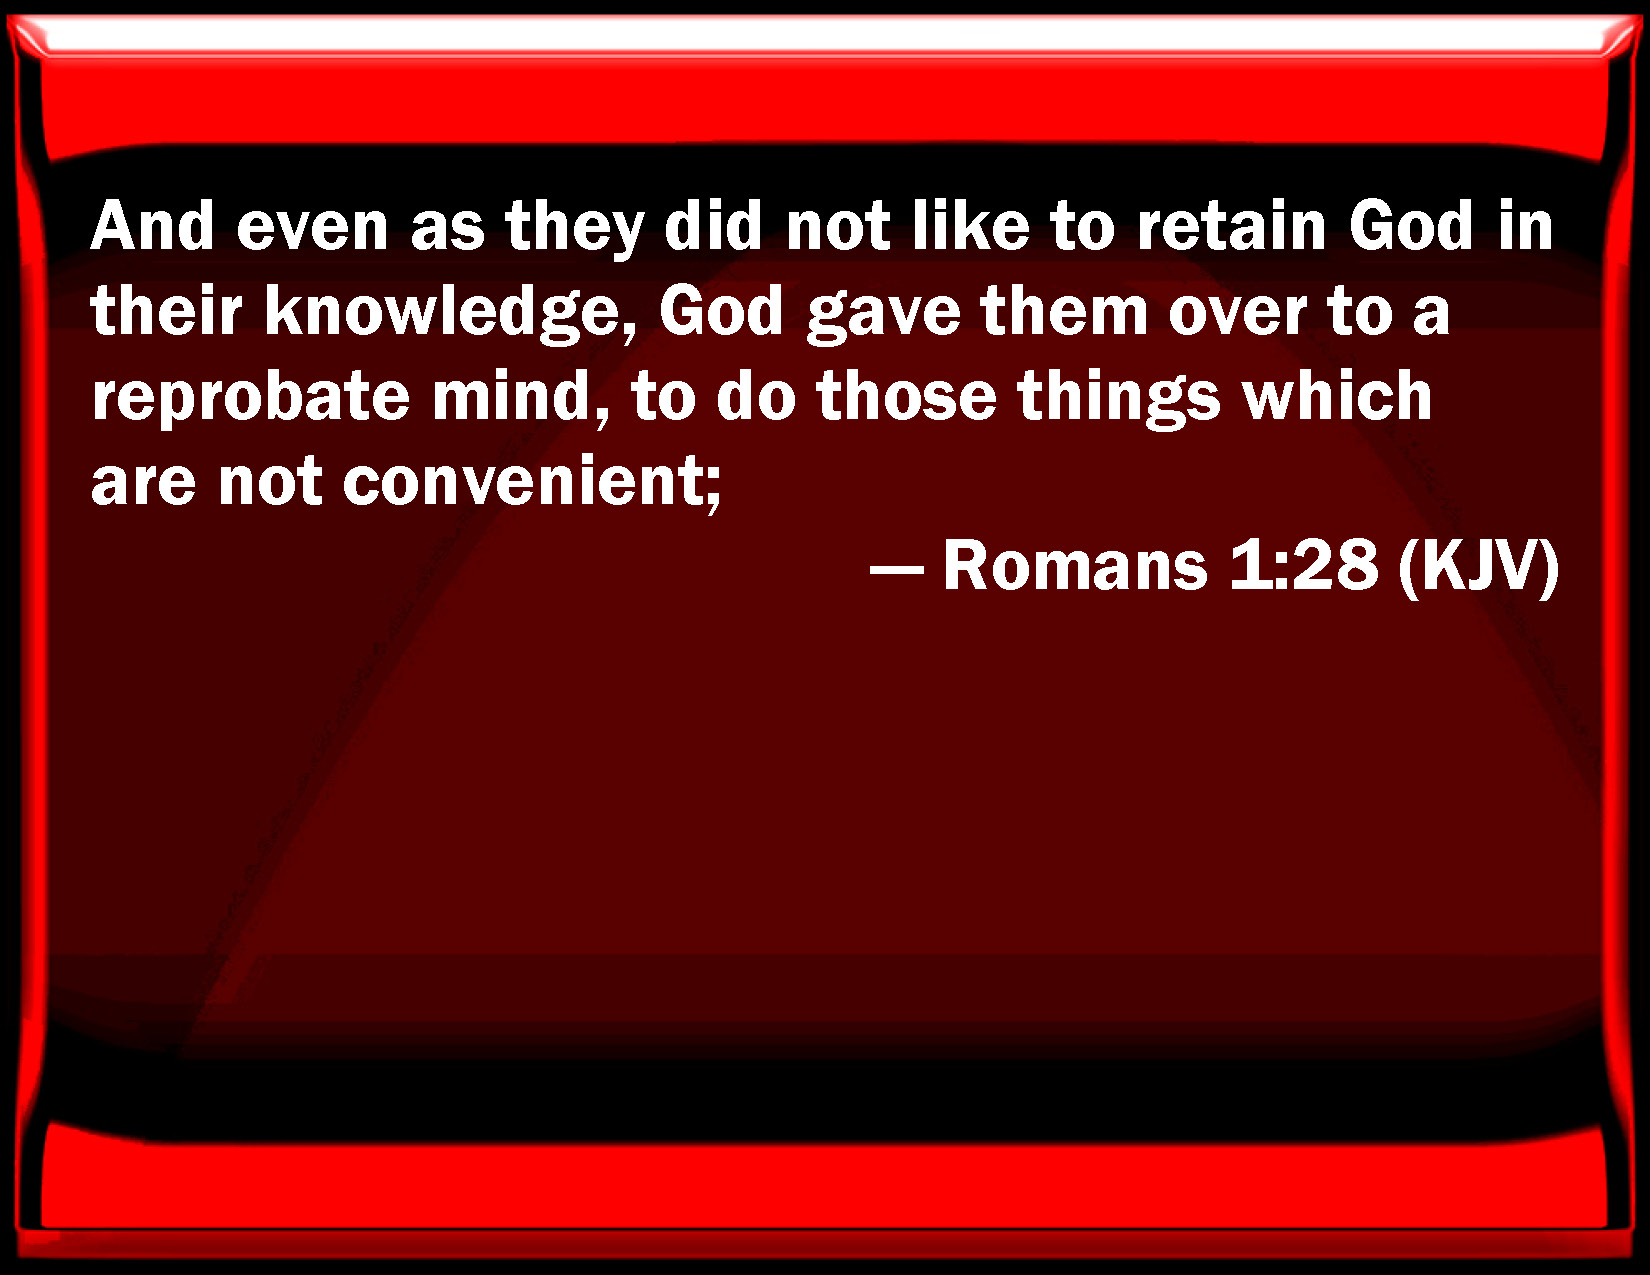 What does the bible say about a reprobate mind